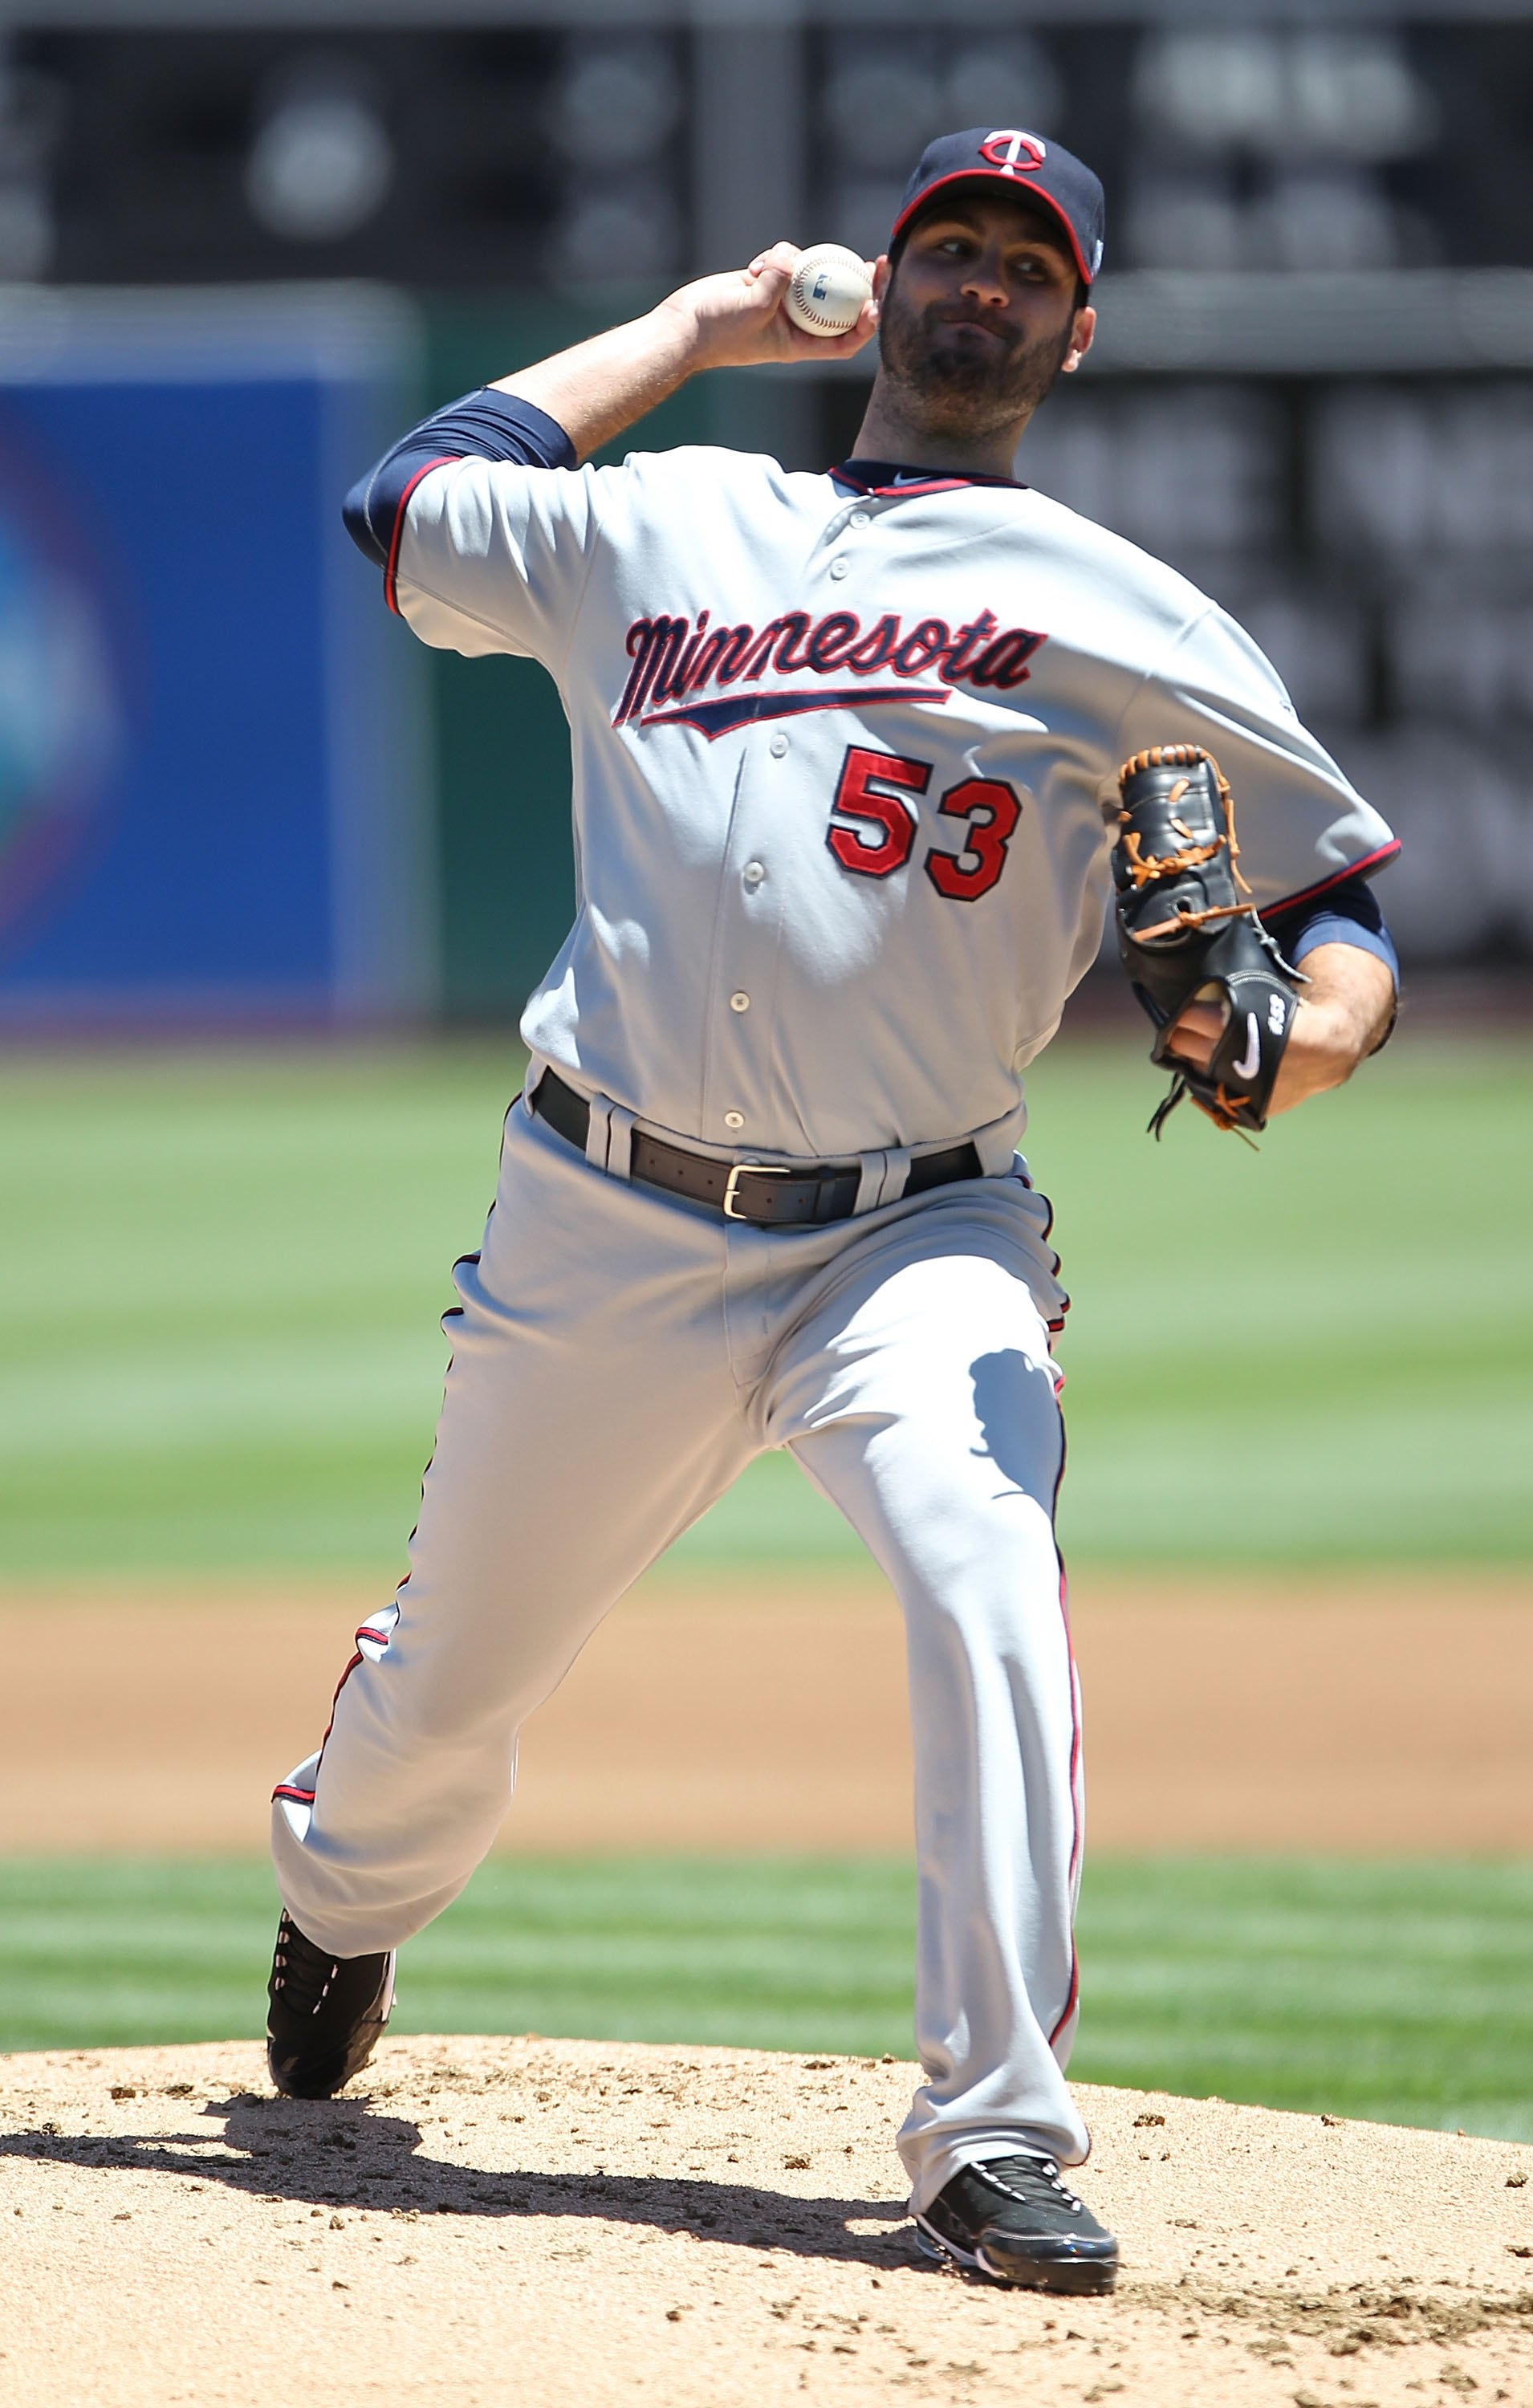 OAKLAND, CA - JUNE 06:  Nick Blackburn #53 of the Minnesota Twins pitches against the Oakland Athletics during an MLB game at the Oakland-Alameda County Coliseum on June 6, 2010 in Oakland, California.  (Photo by Jed Jacobsohn/Getty Images)